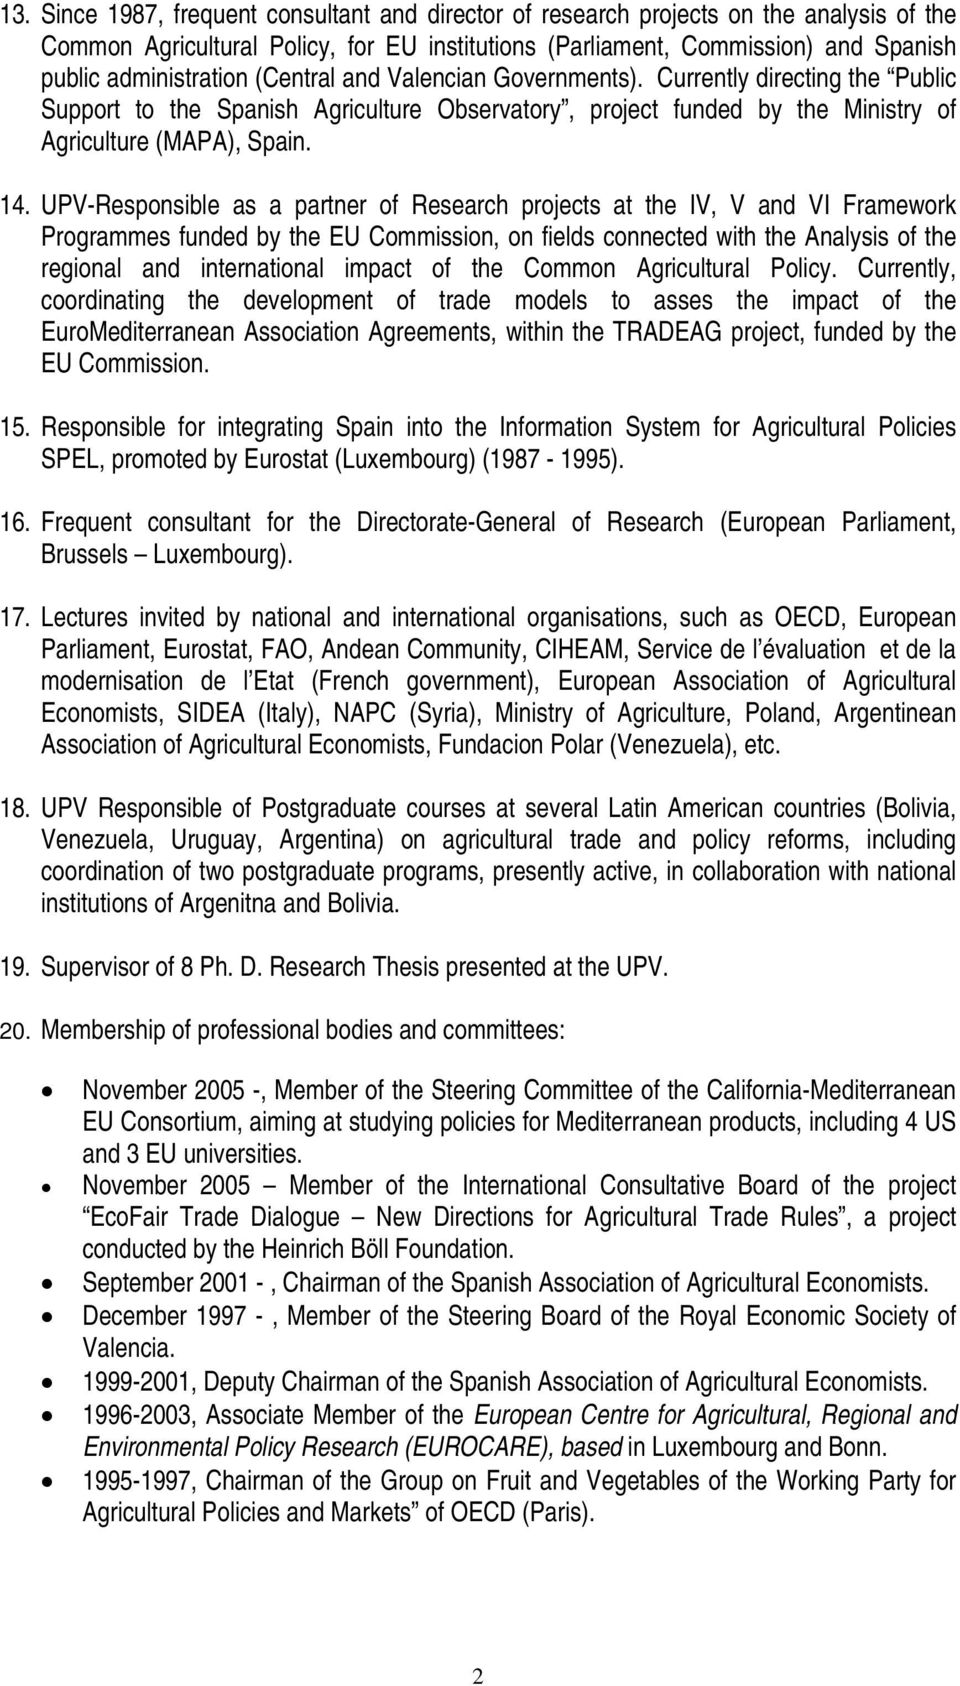 UPV-Responsible as a partner of Research projects at the IV, V and VI Framework Programmes funded by the EU Commission, on fields connected with the Analysis of the regional and international impact